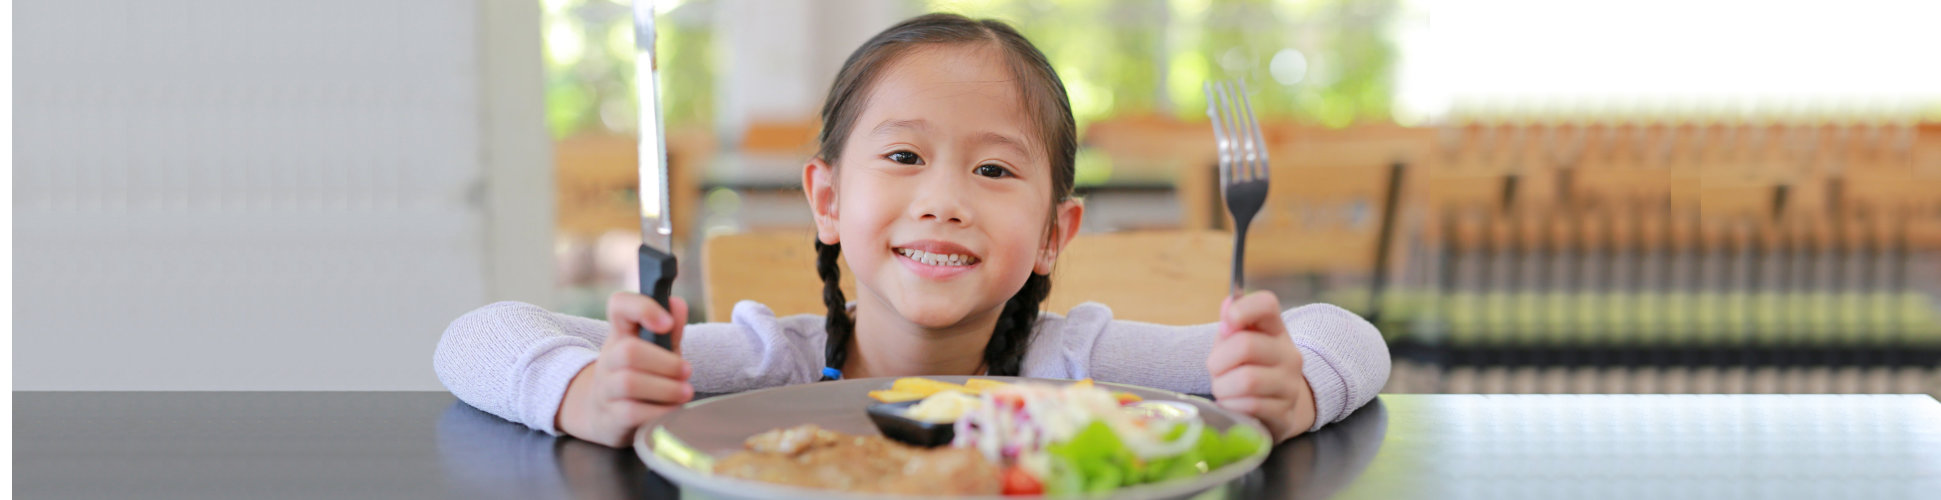 kid smiling while holding cutlery